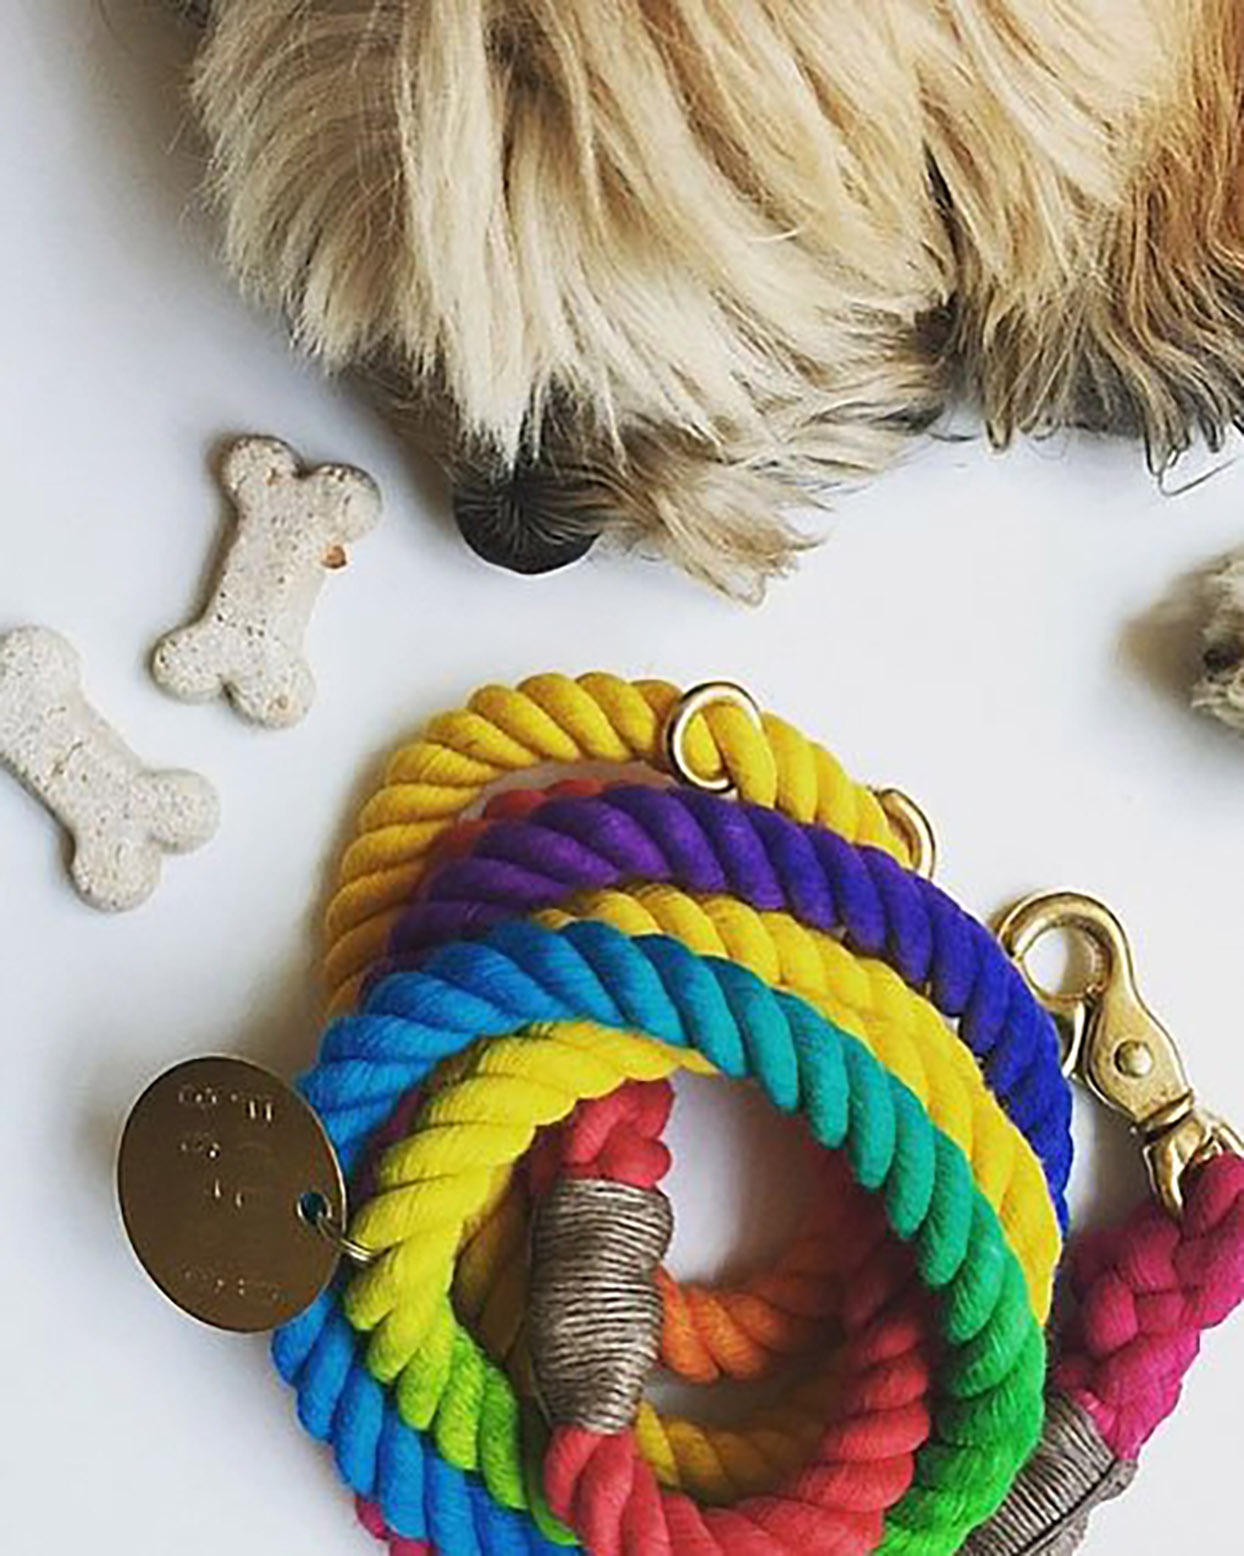 Multi-color adjustable Found My Animal dog leash in rainbow color next to dog nose